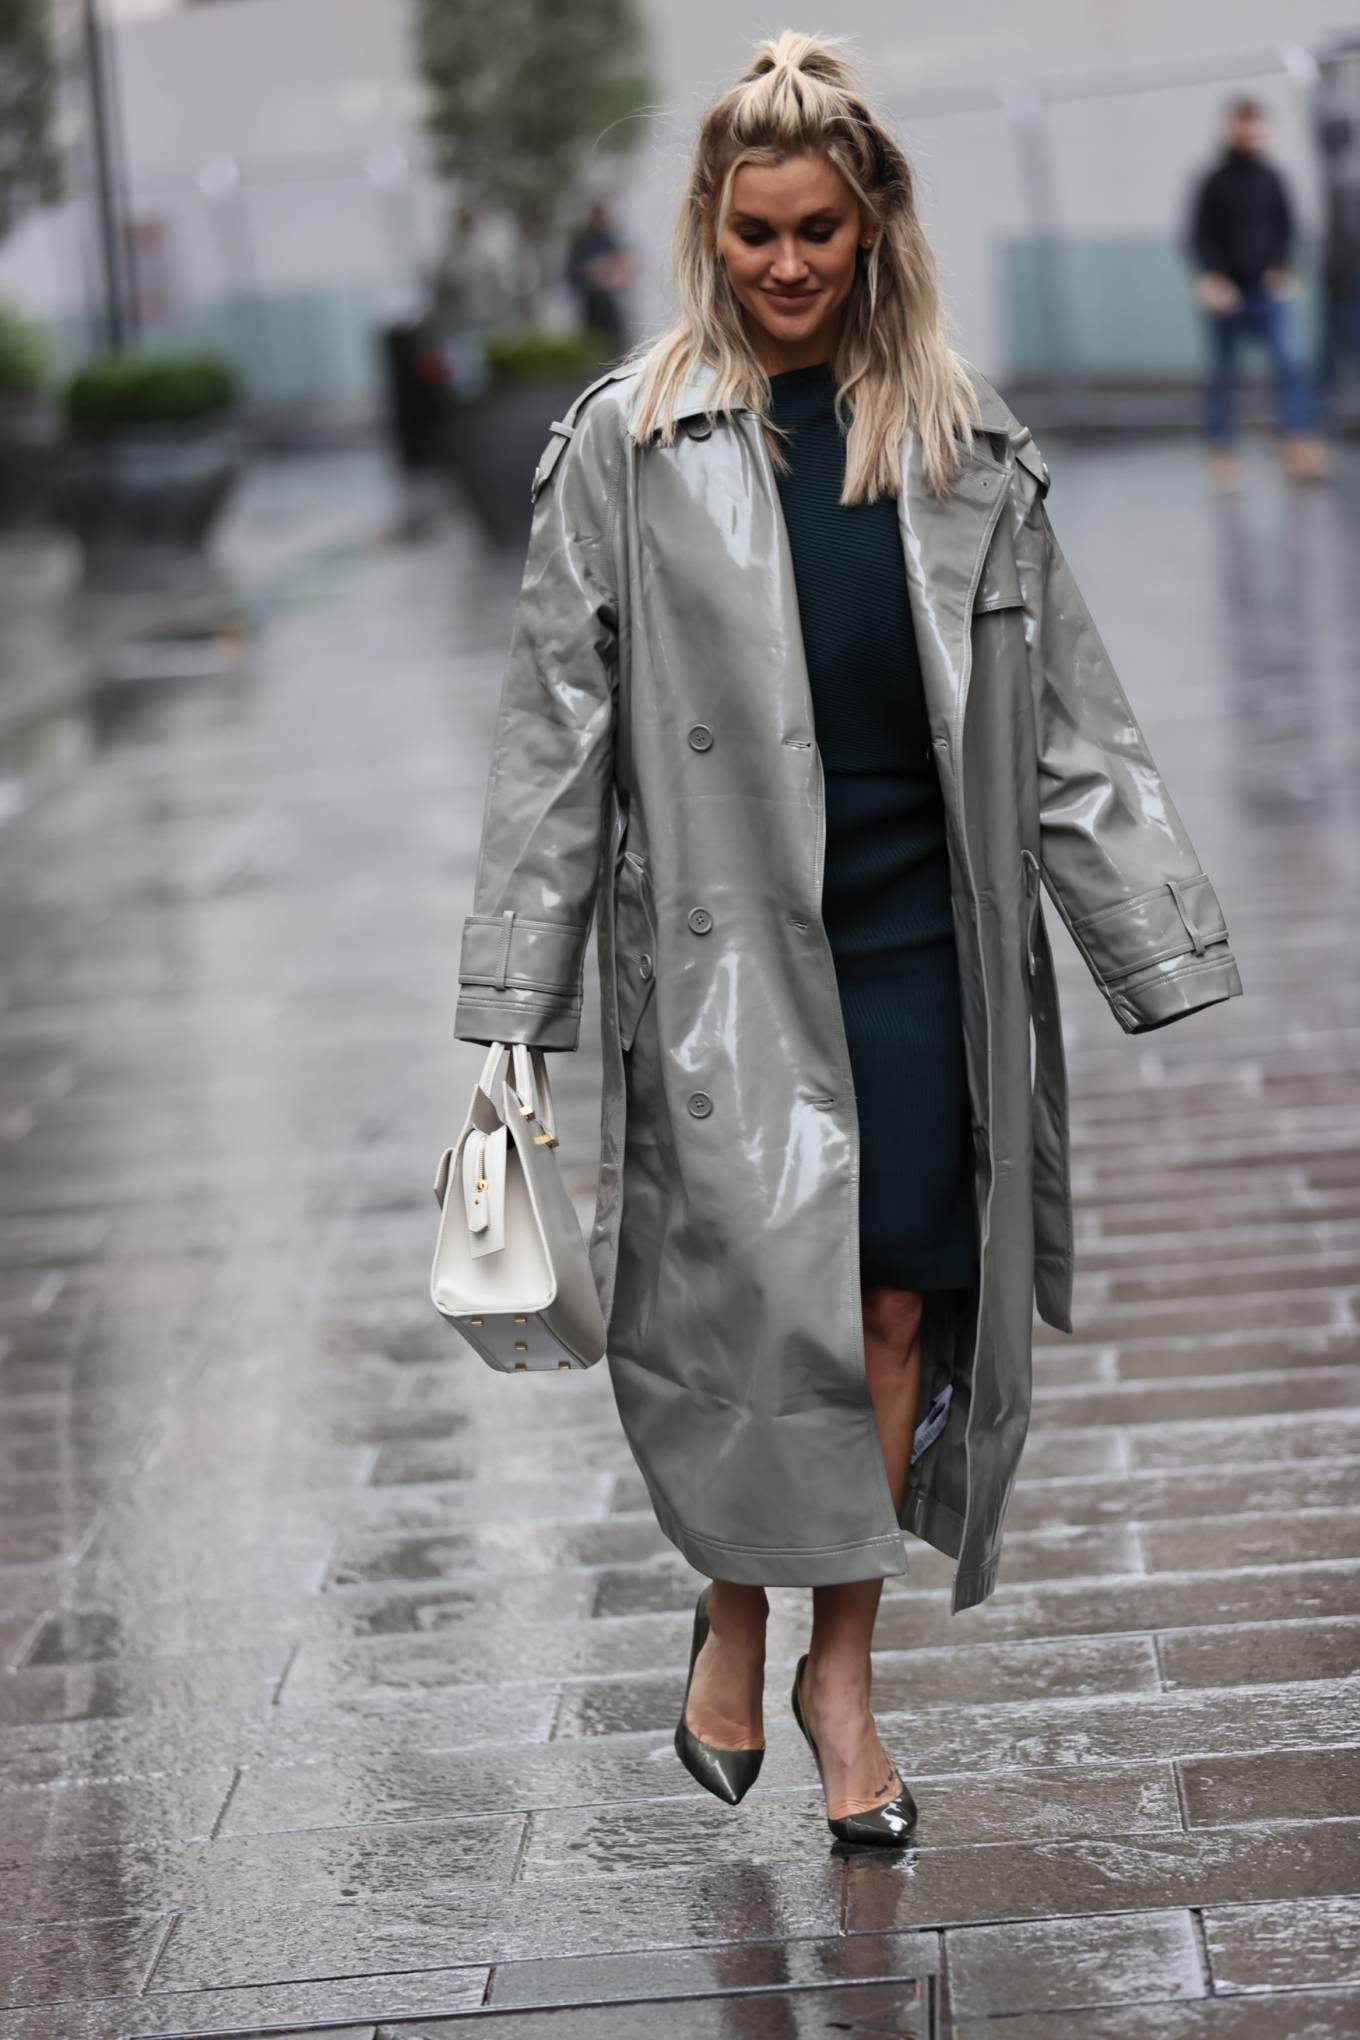 Ashley Roberts 2020 : Ashley Roberts – Looks chic in silver coat and pencil skirt in London-04